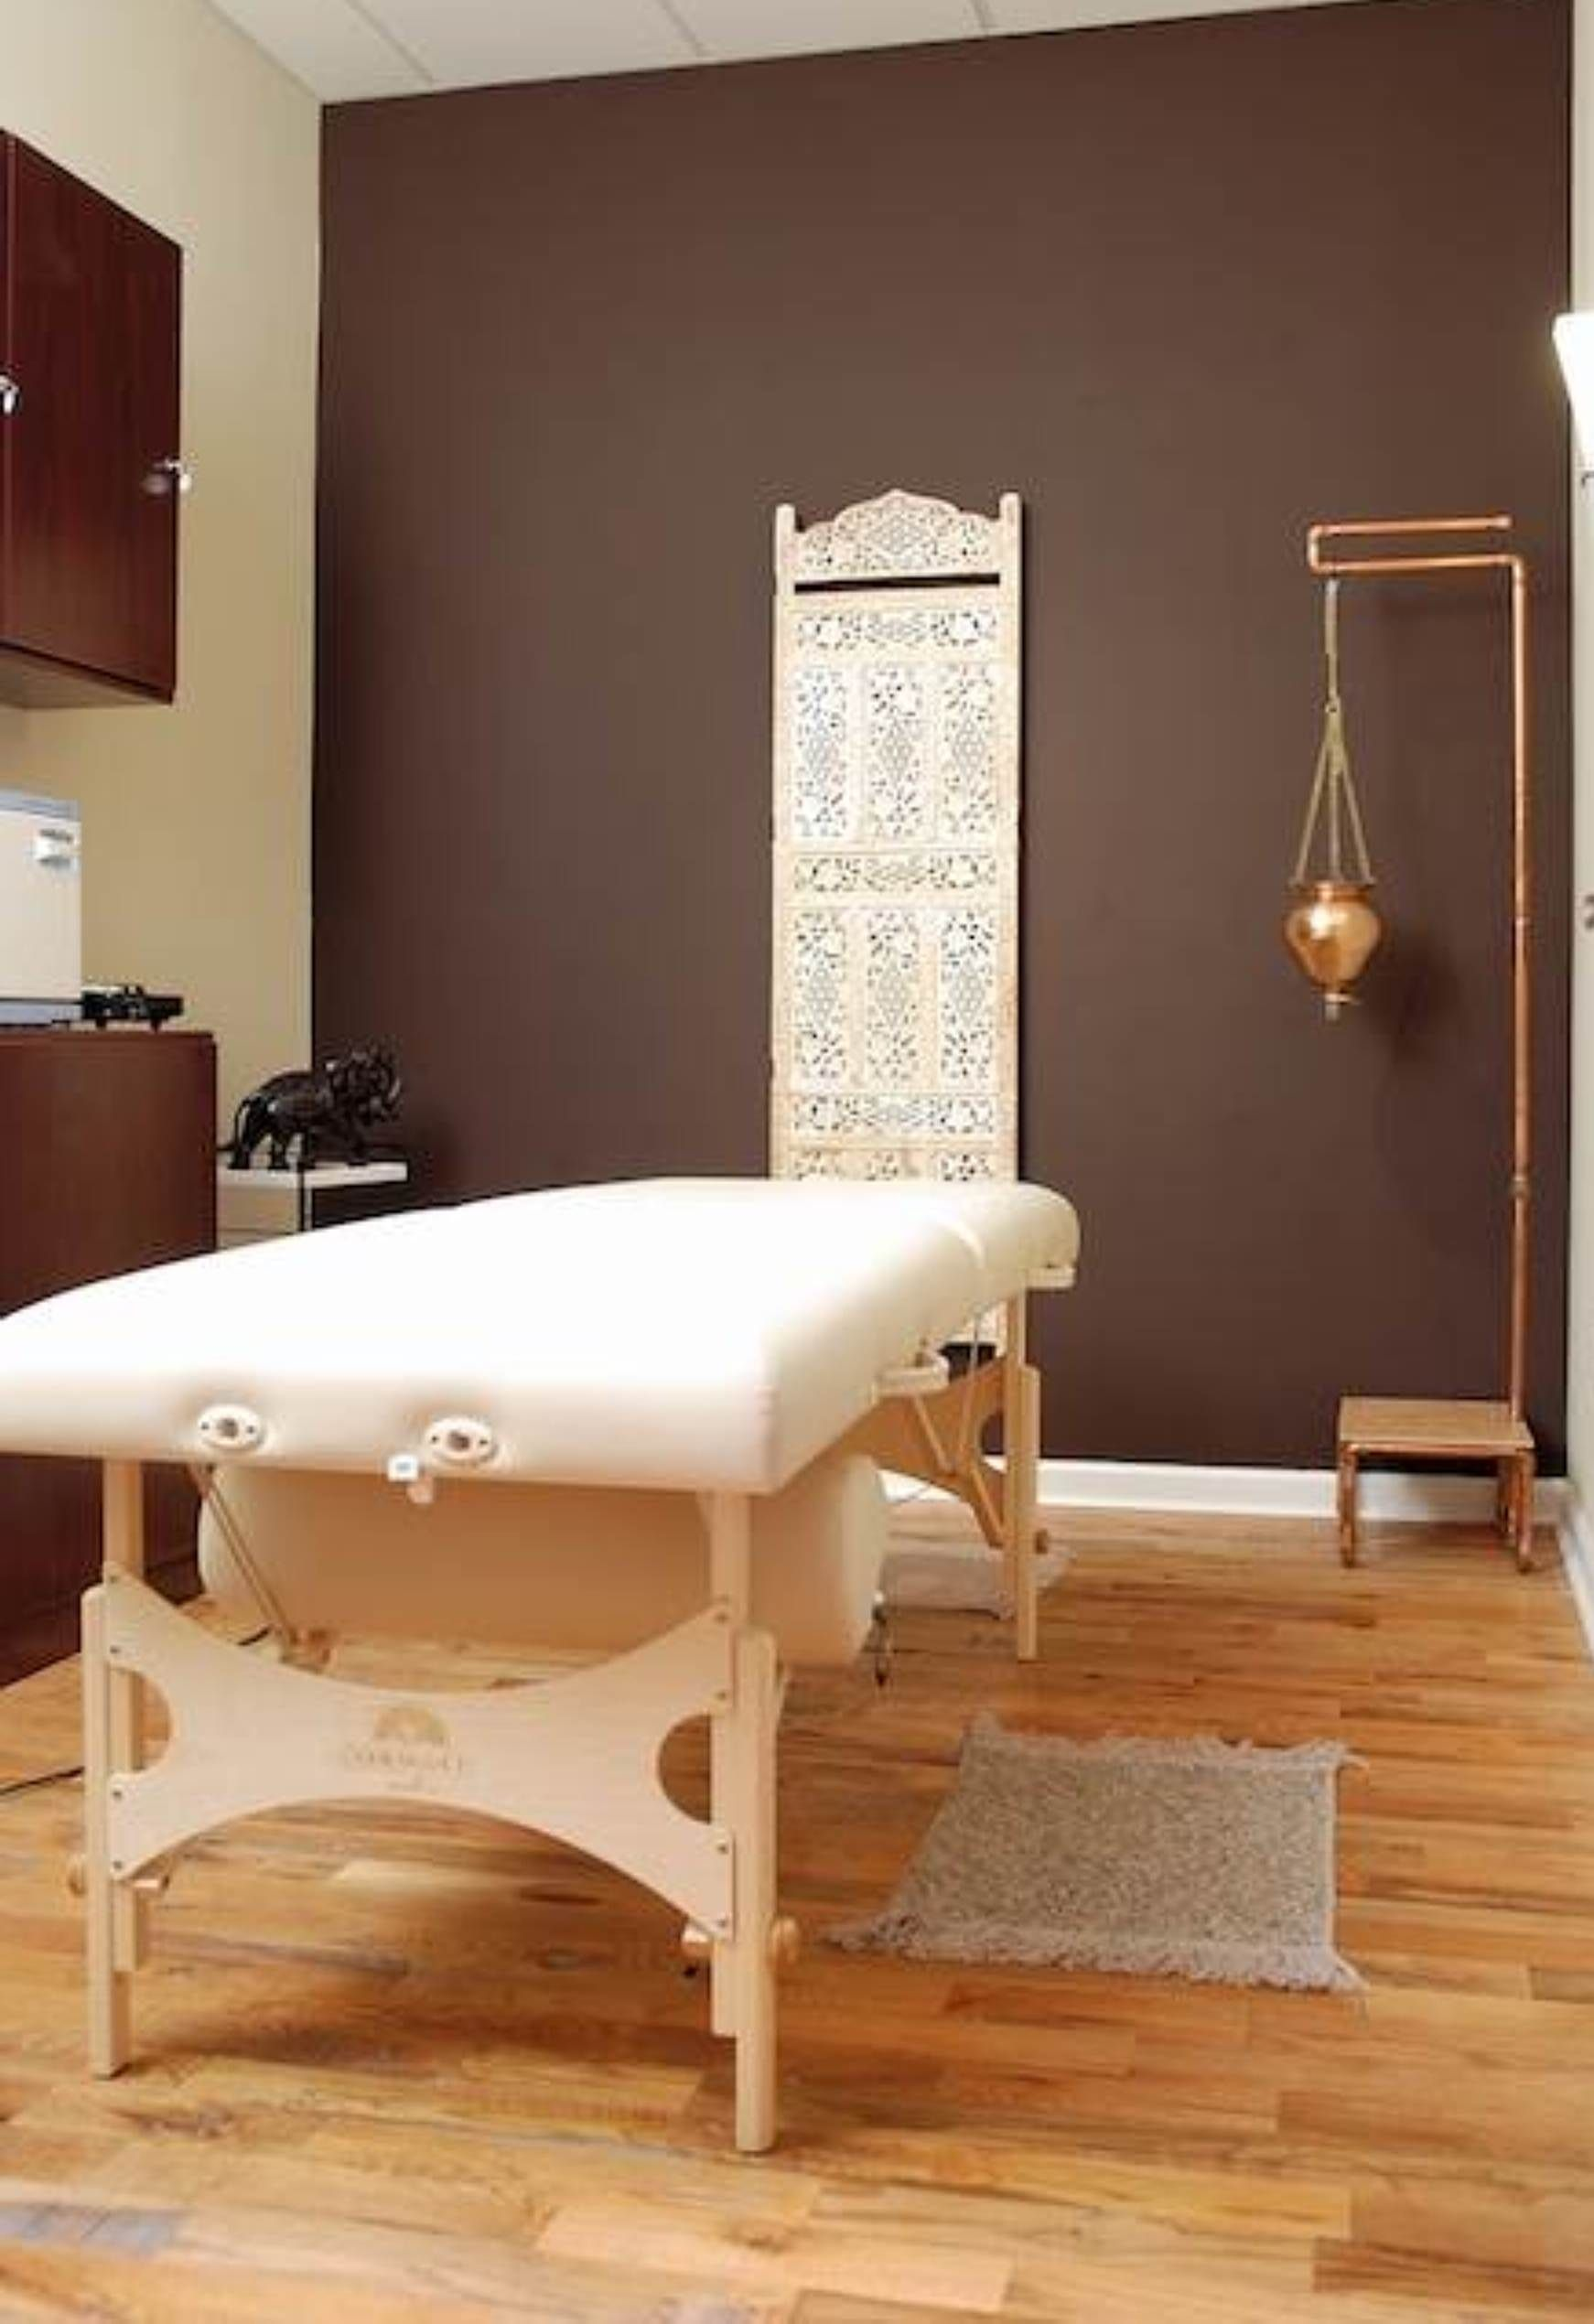 Small Massage Room Ideas Previous Image Next Image Massage Room Decor Massage Room Massage Room Design